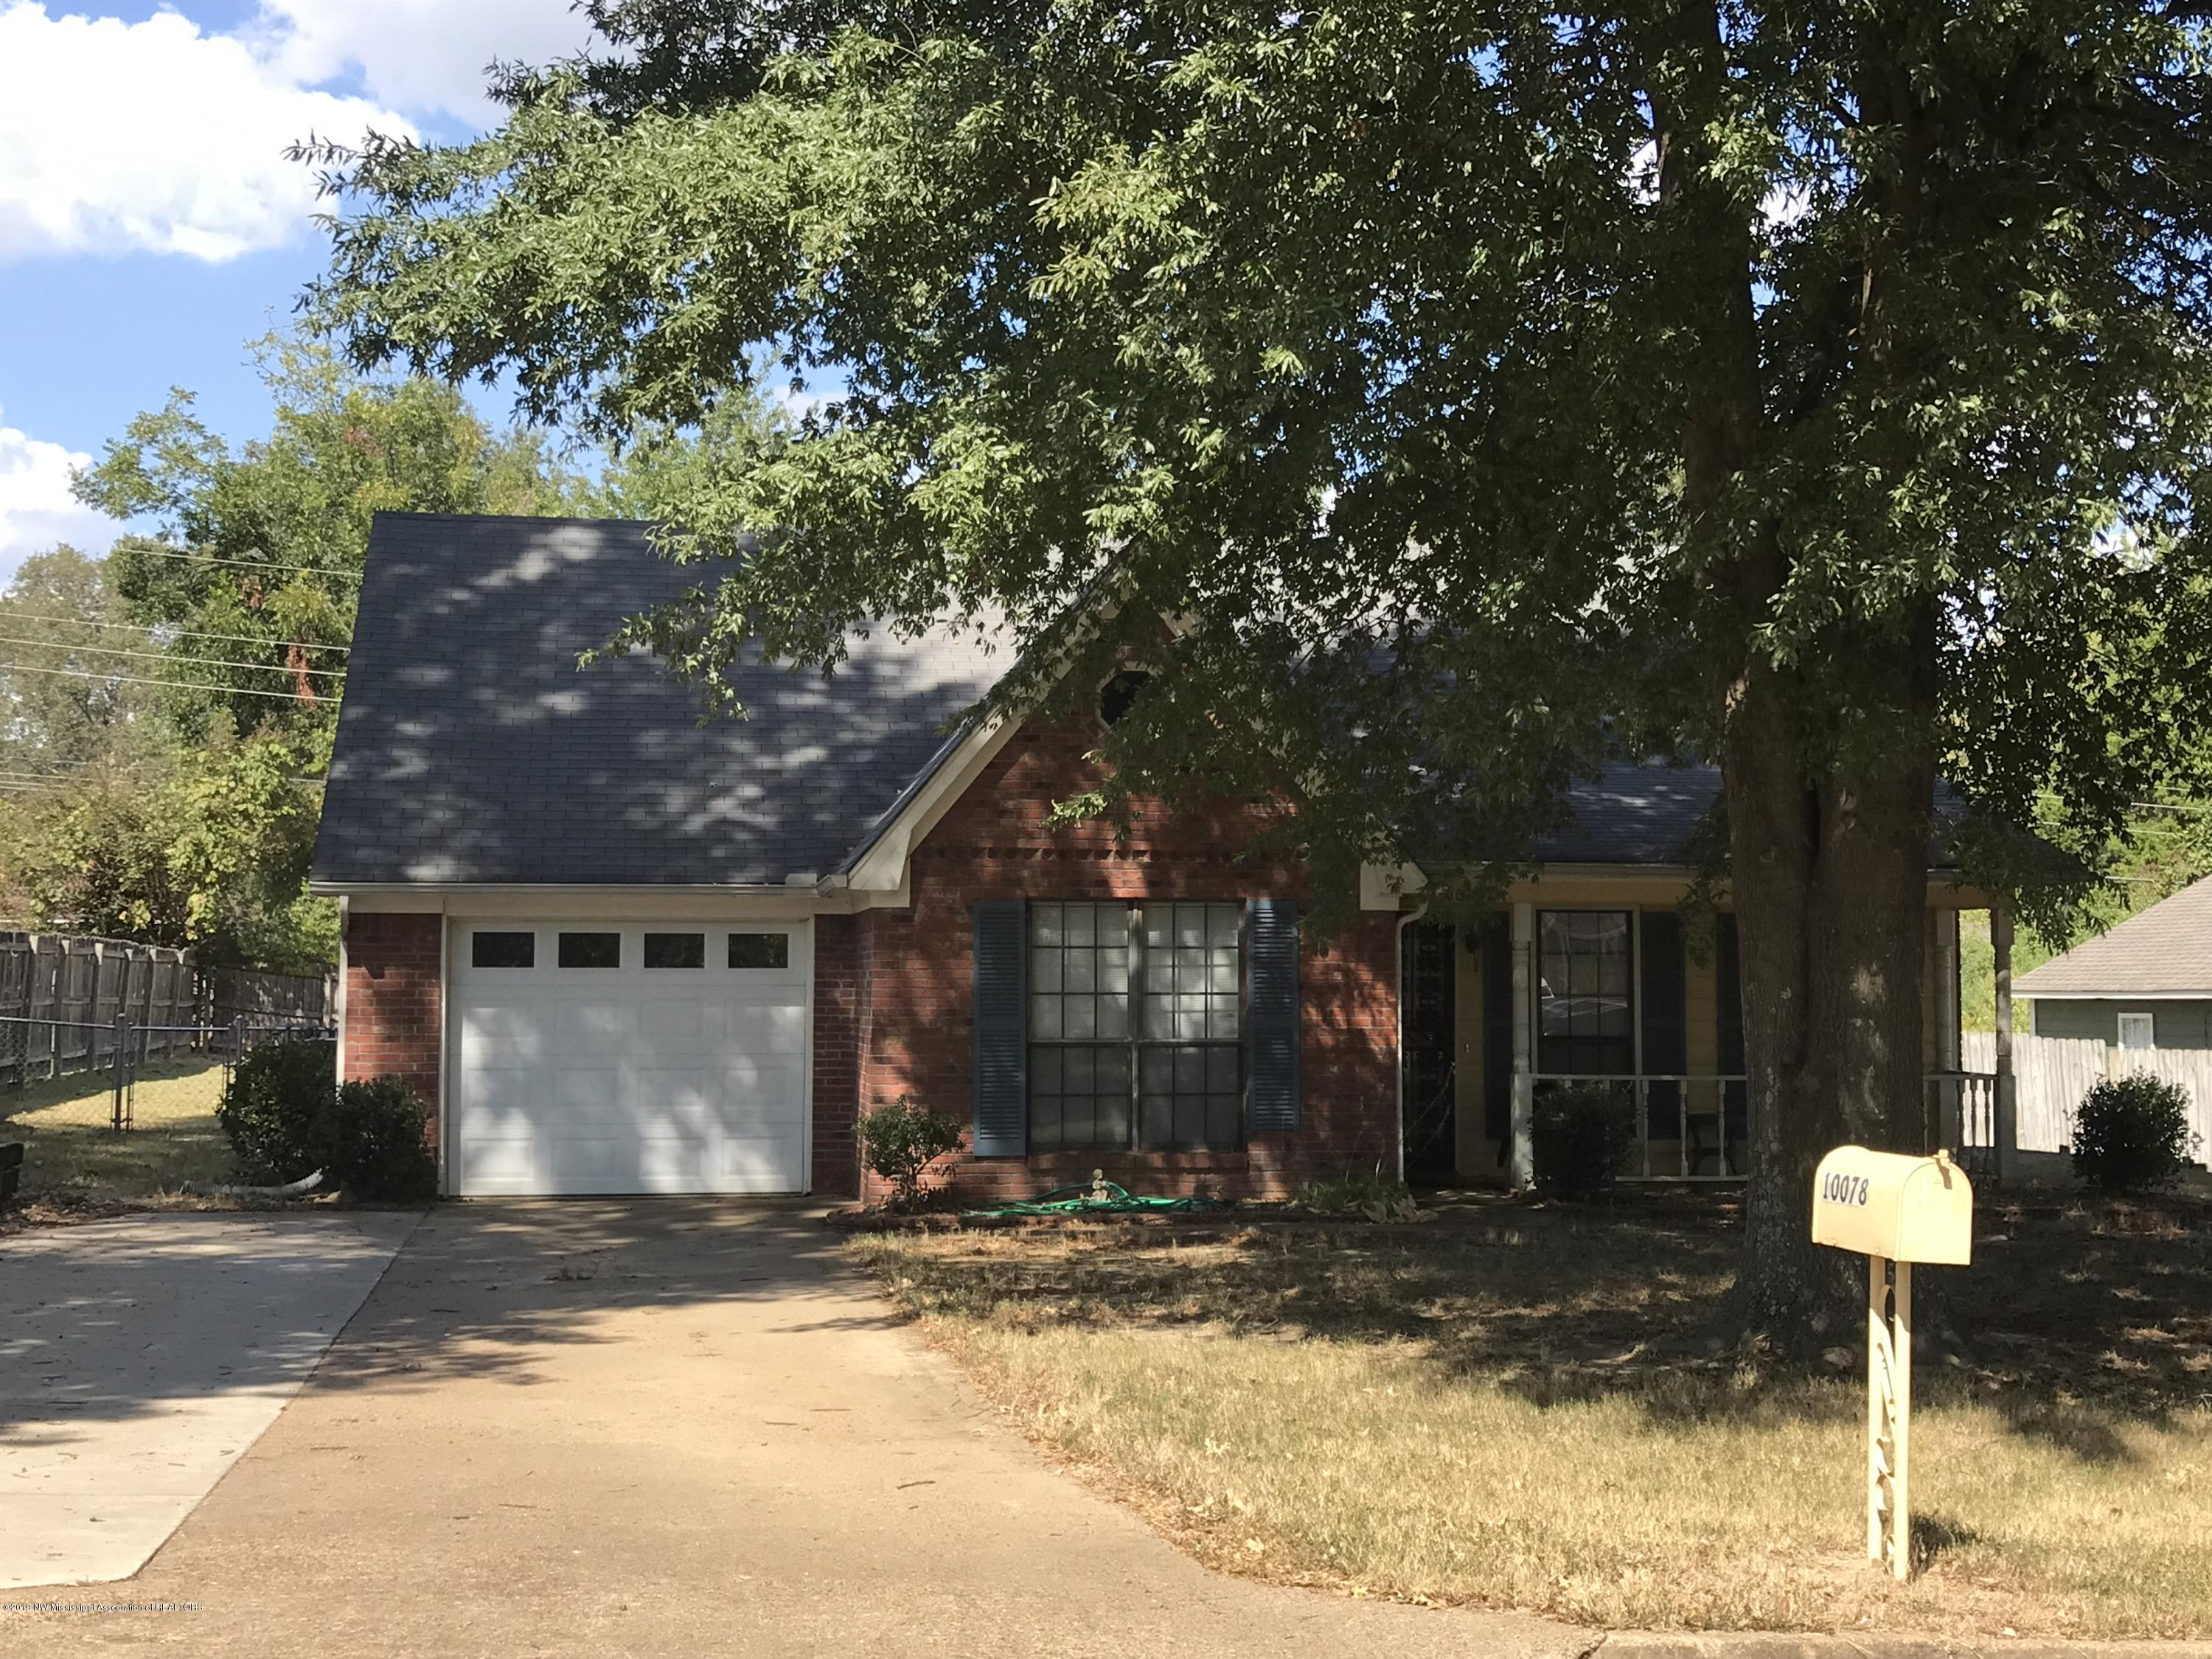 10078 Phillip Drive;, Olive Branch in DeSoto County, MS 38654 Home for Sale